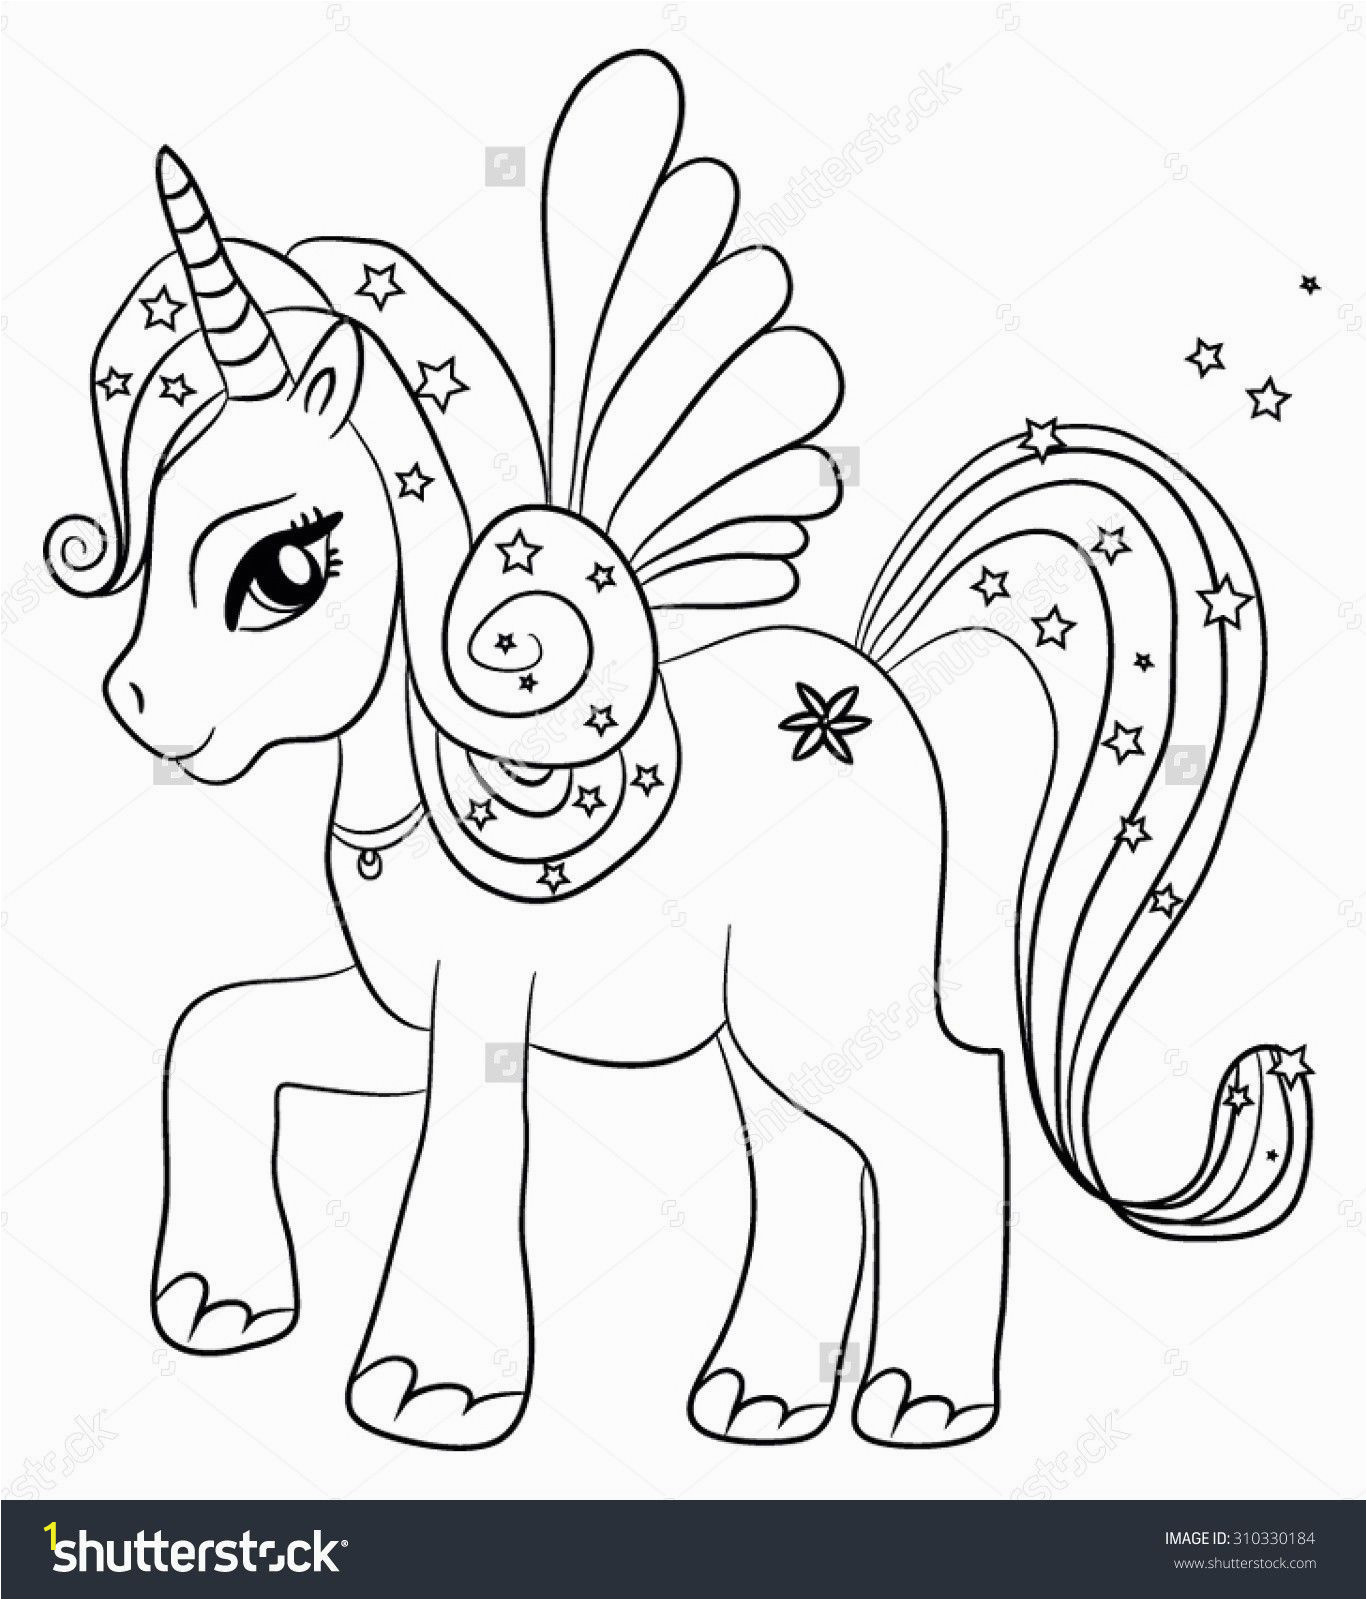 Free Printable Coloring Pages Unicorns Coloring Pages Unicorns Print Saferbrowser Image Search